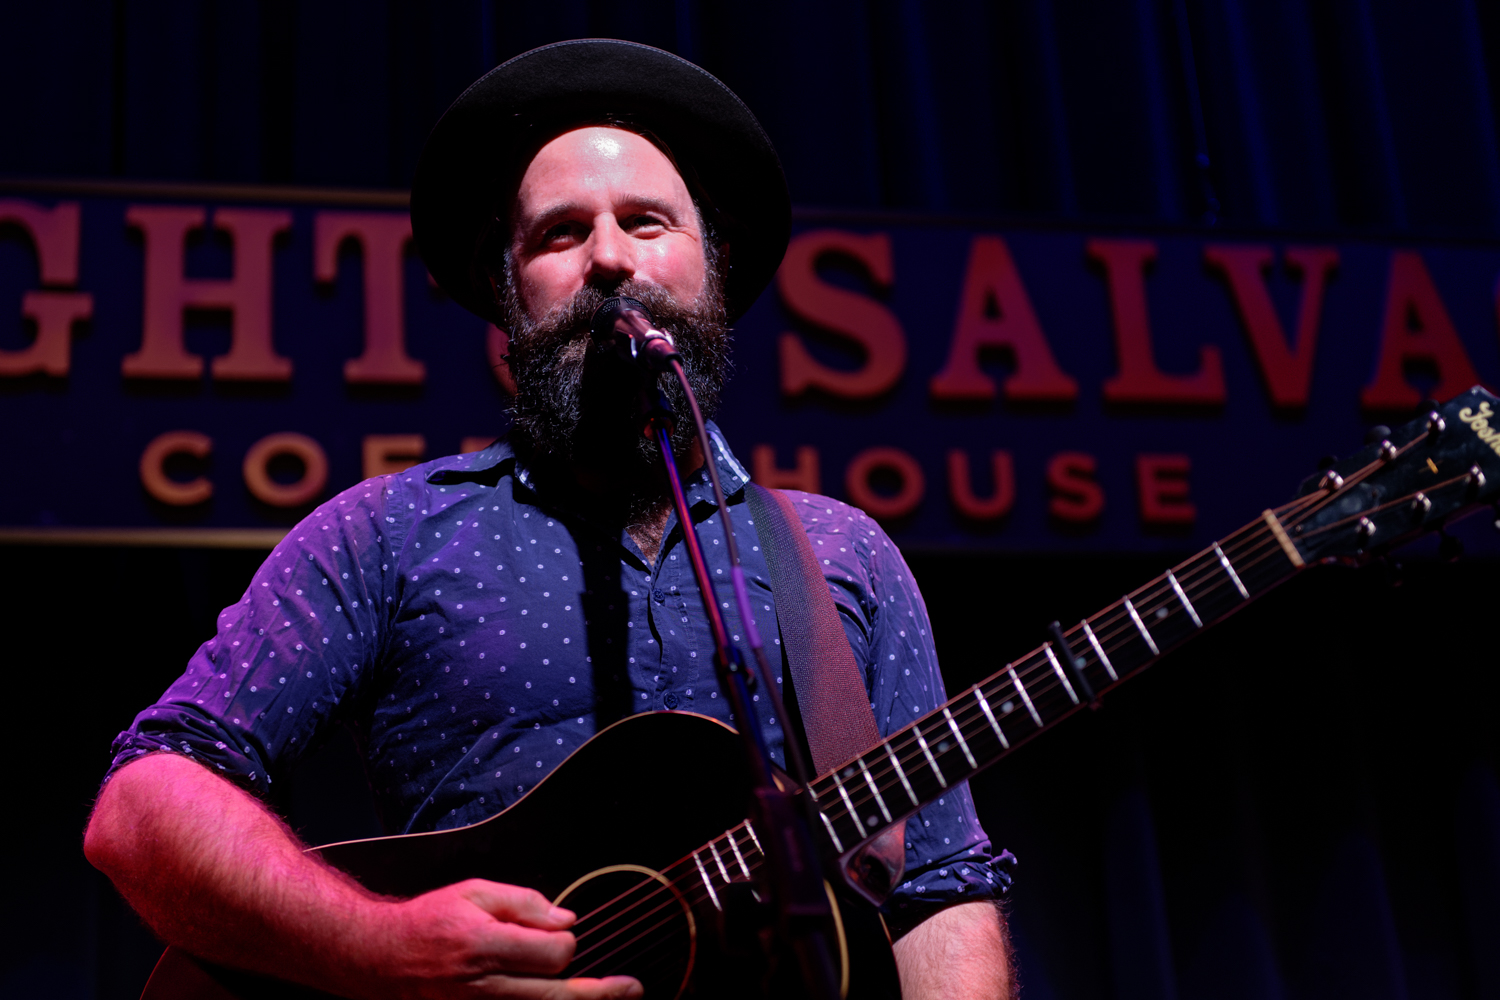 20190801 085 Freight & Salvage - The Waifs by Jon Bauer.jpg